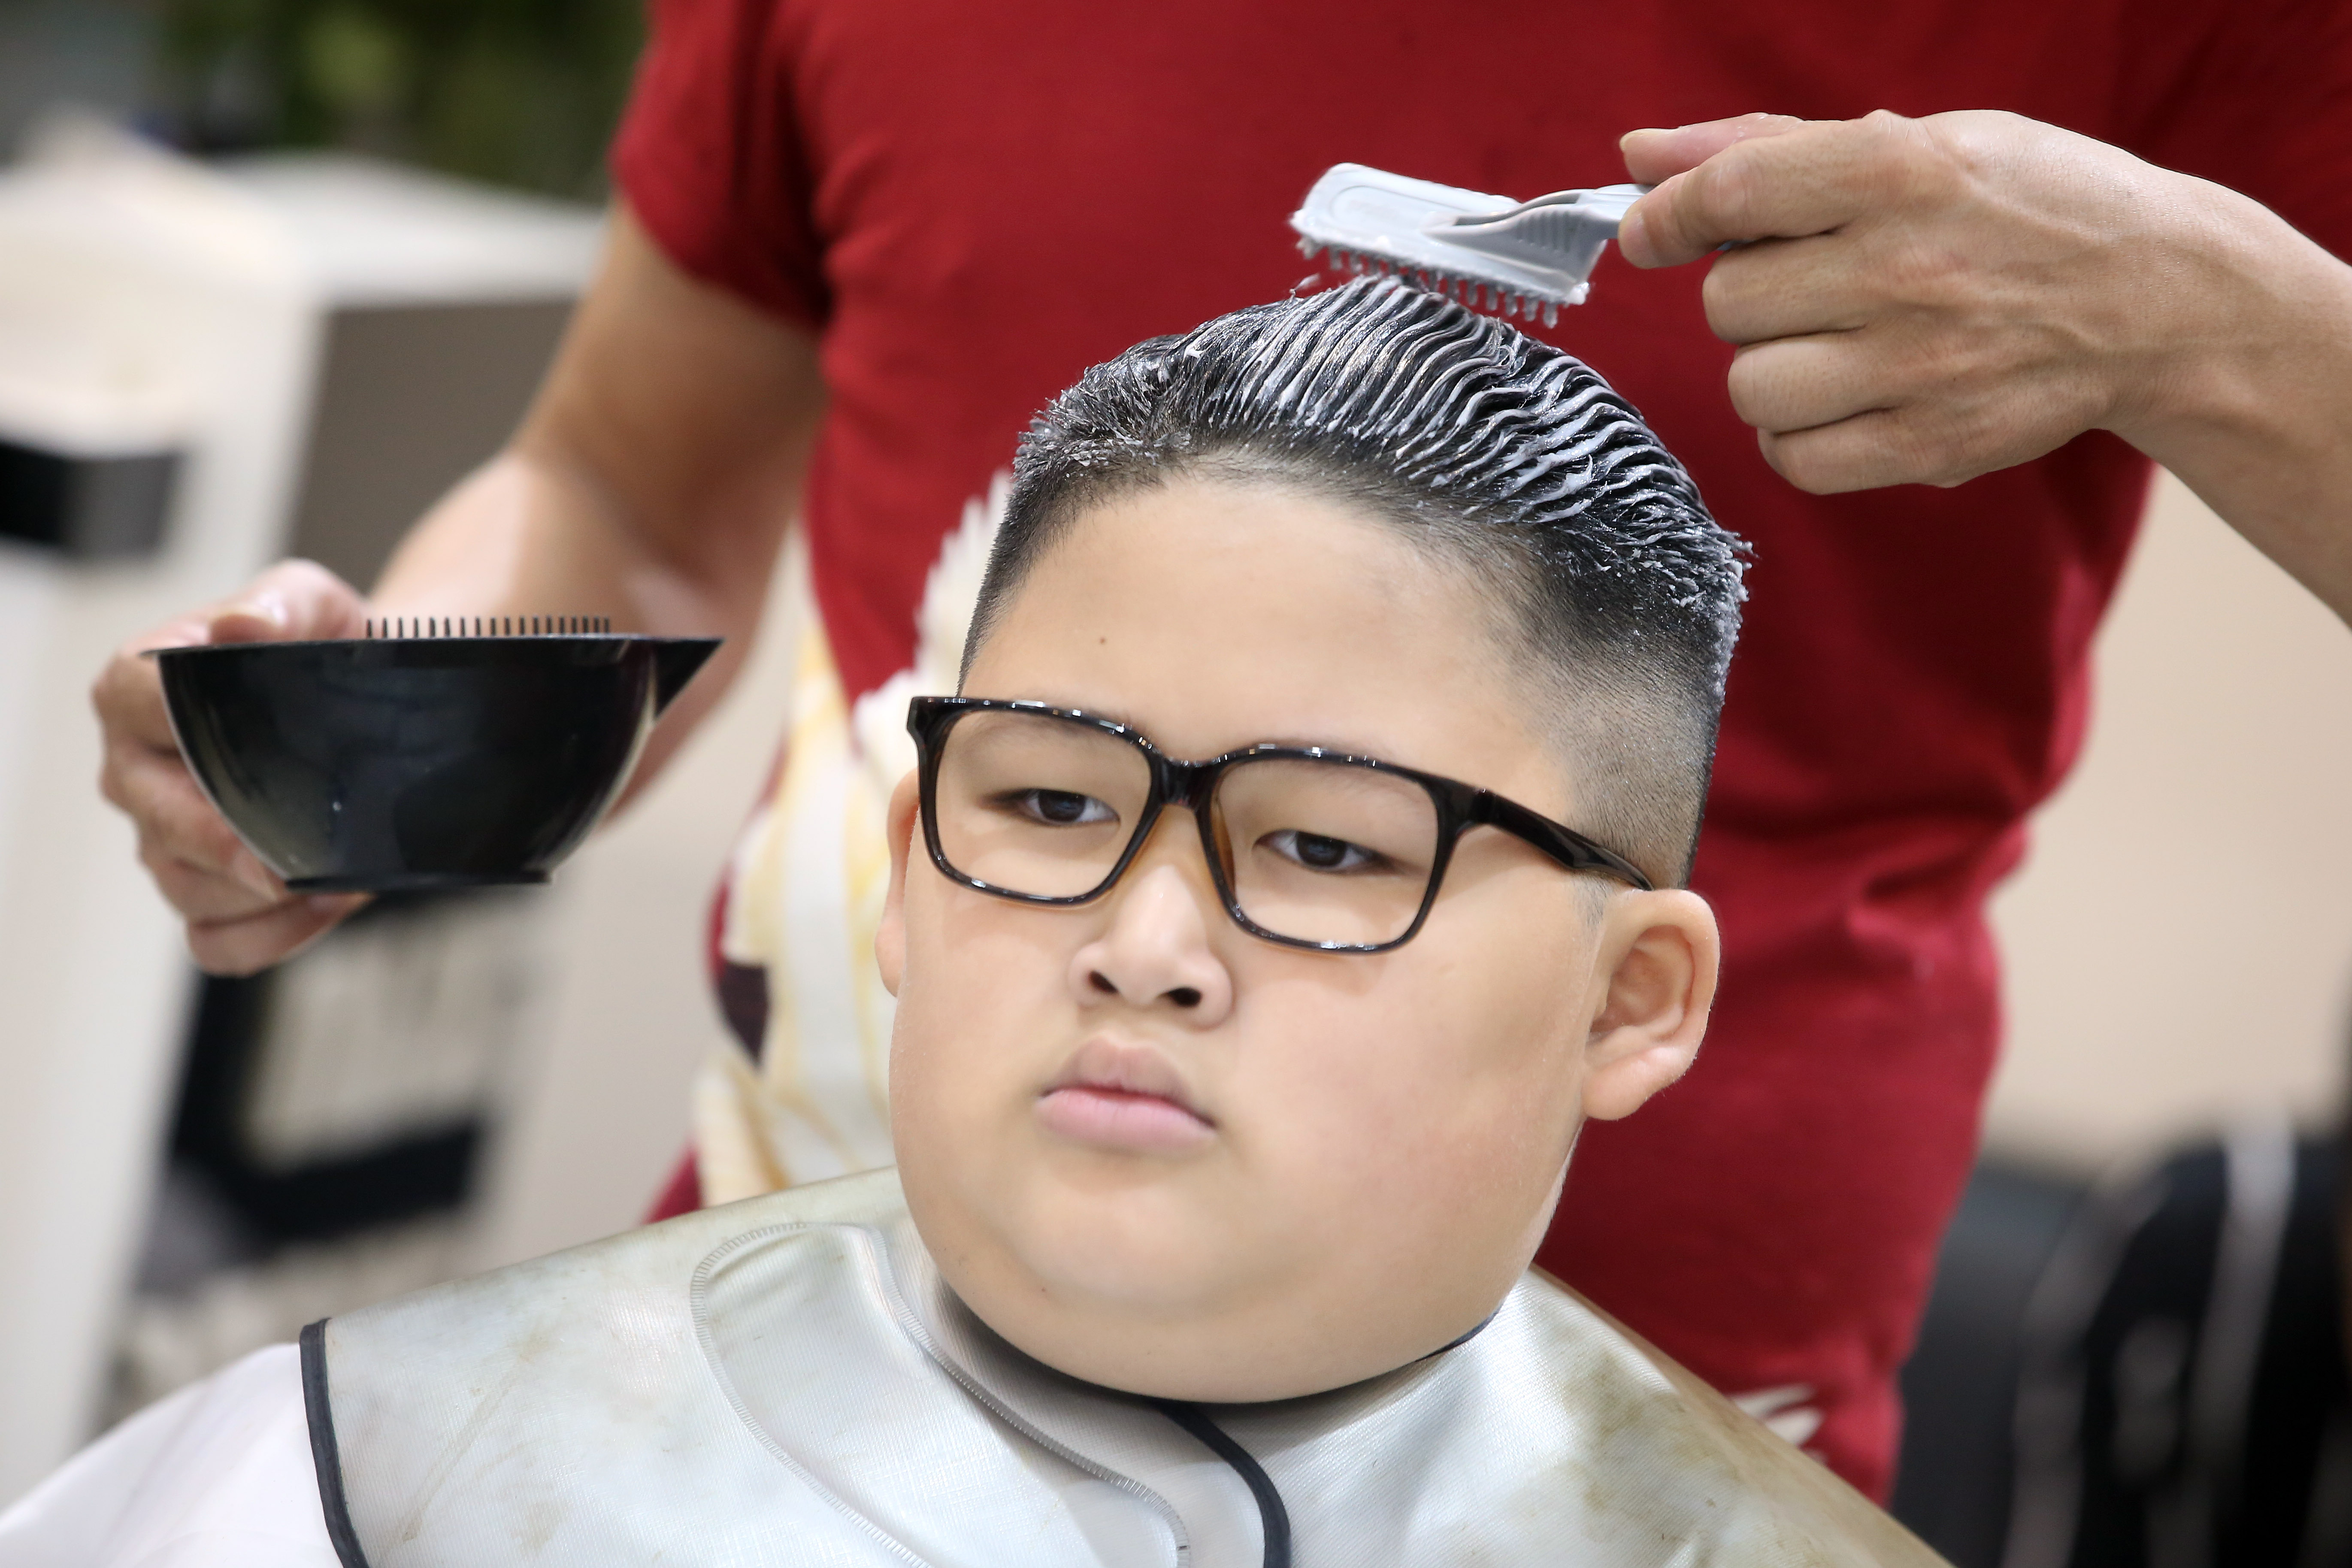 Back in my day nine-year-olds used to get the Nike swoosh shaved into the sides of their heads. Credit: Shutterstock